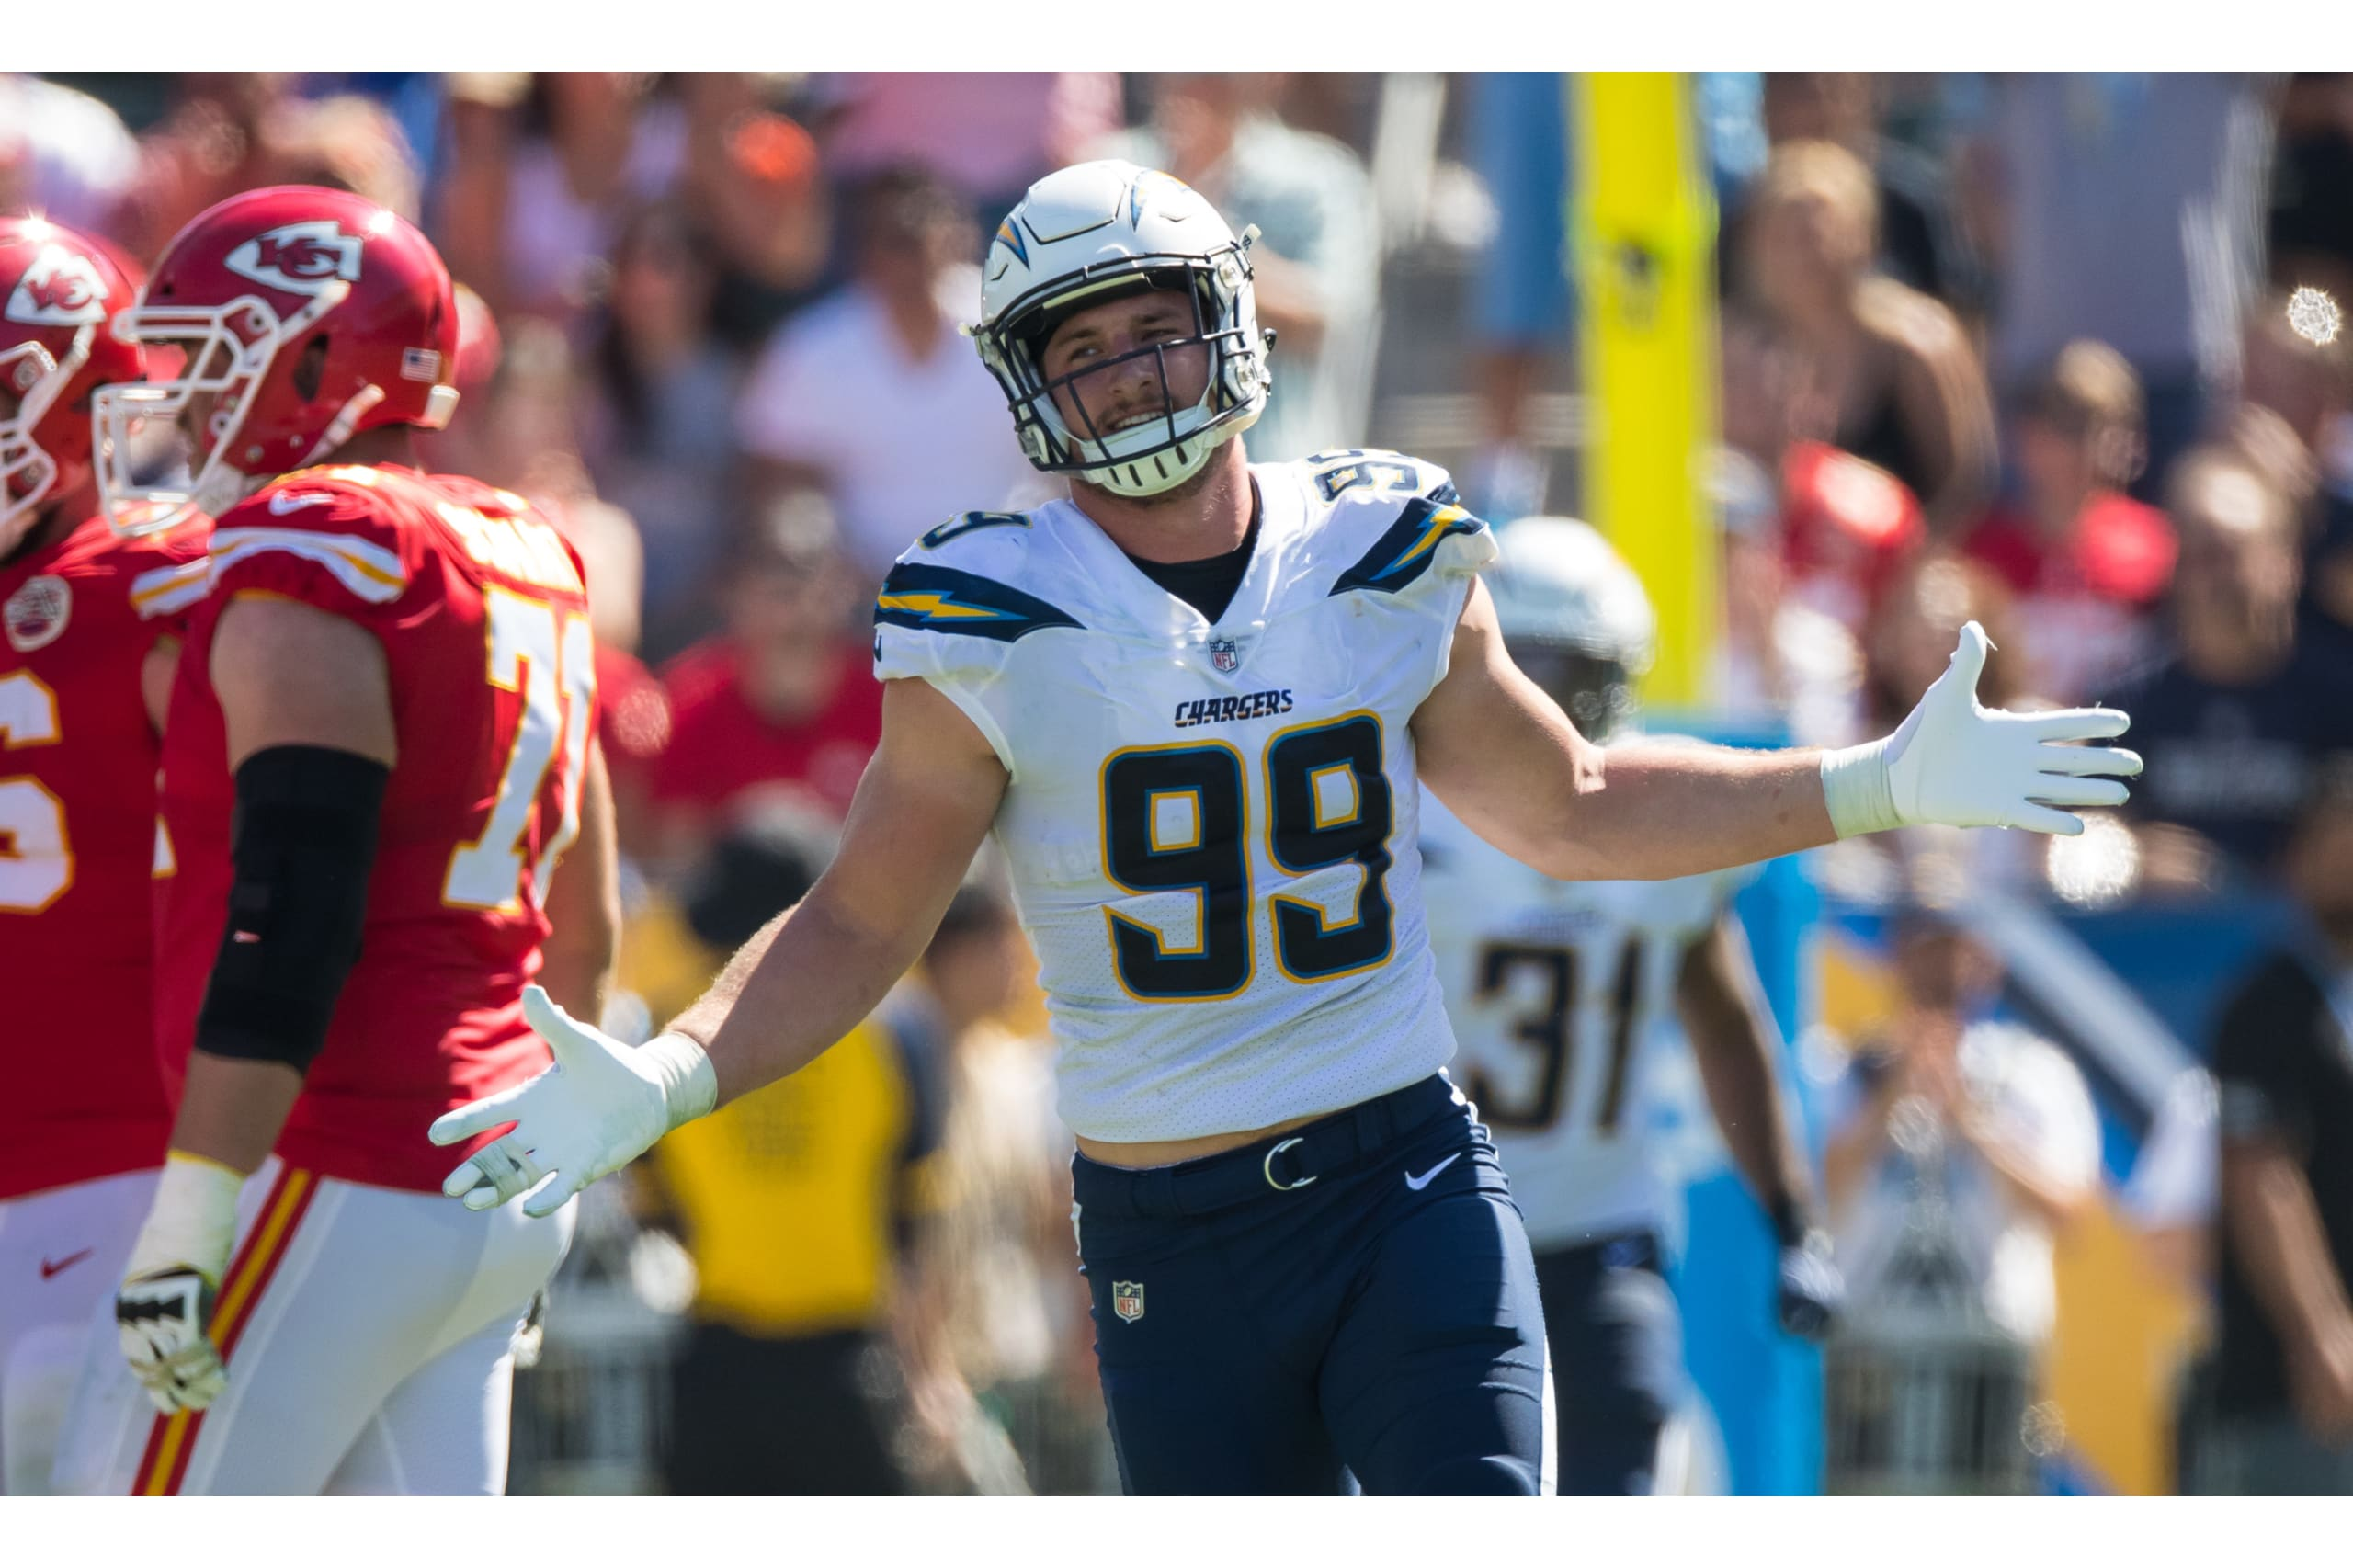 Don't sleep on the Chargers, they could have the best defense in the NFL